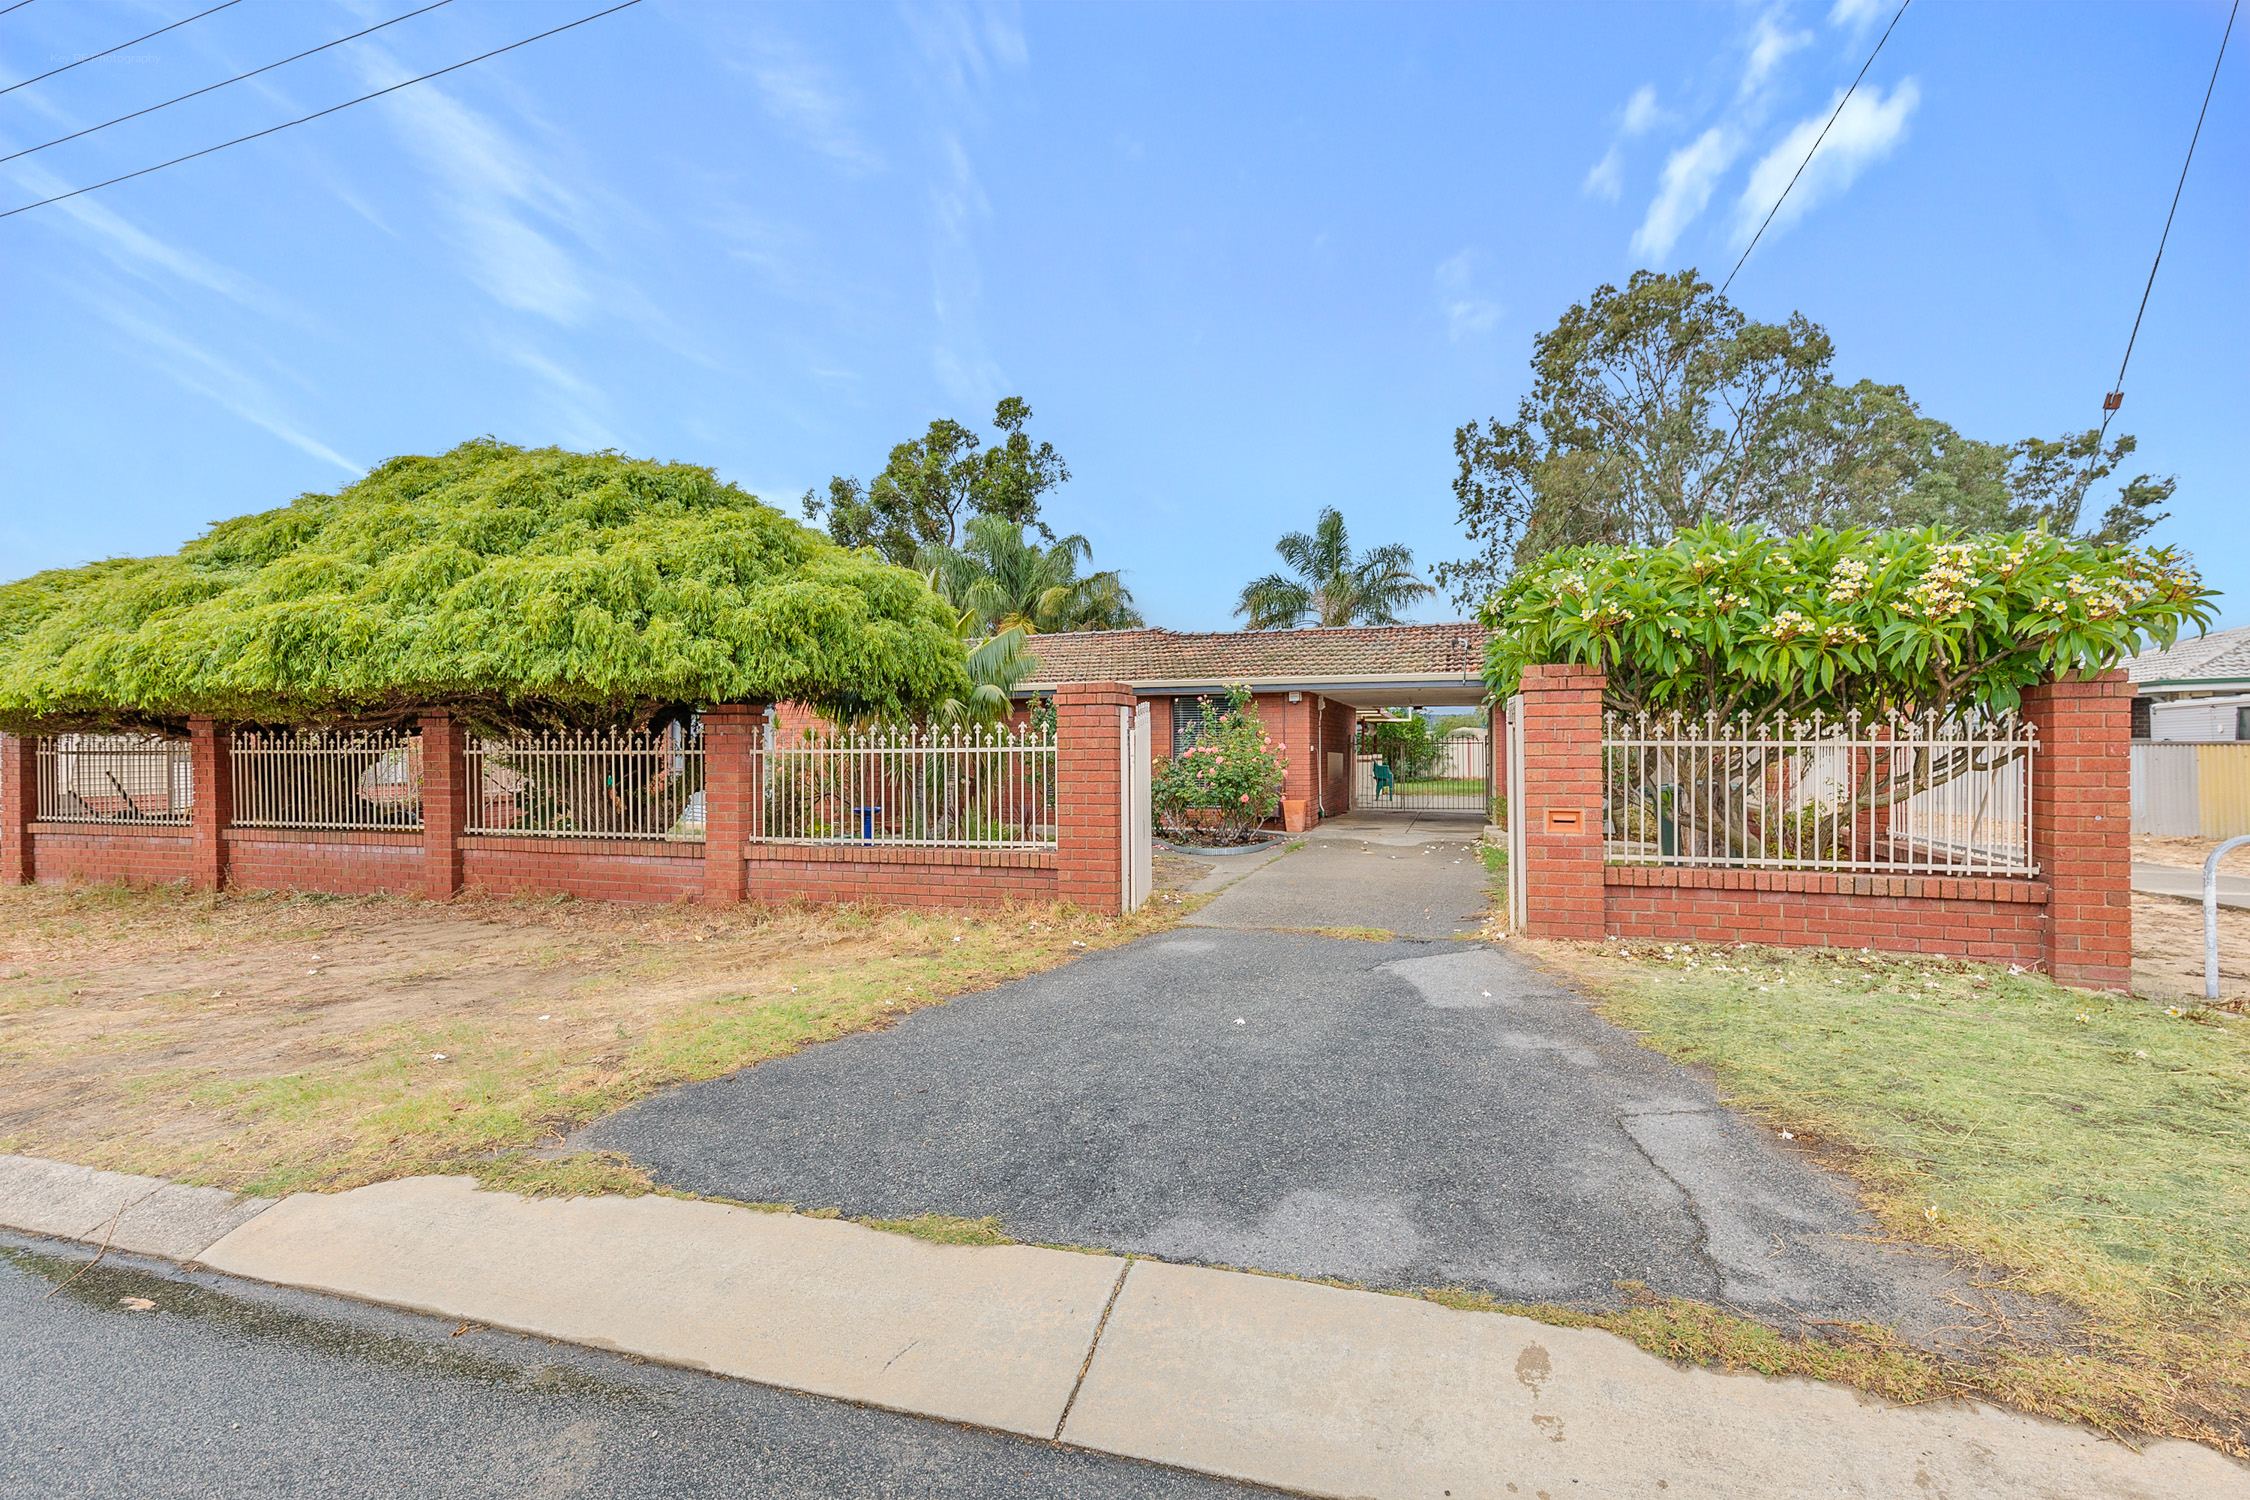 Property for sale in ARMADALE, 11 Walcha Way : Attree Real Estate